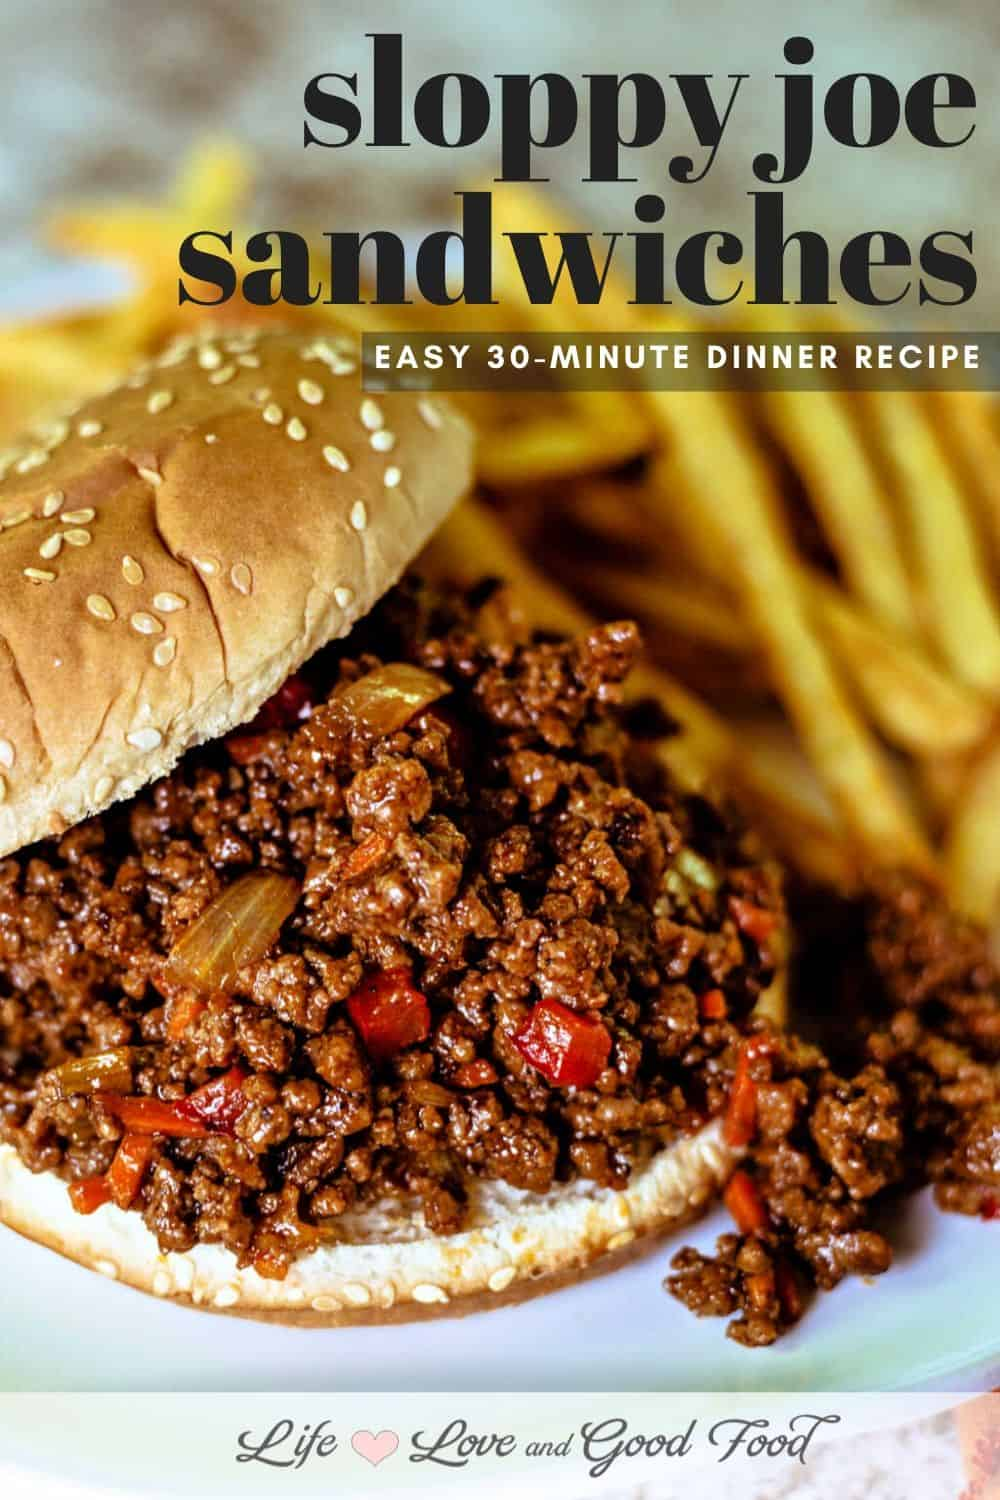 Ready in just 30 minutes, serve homemade Sloppy Joe Sandwiches topped with shredded cheddar cheese and dill pickles for the perfect flavor contrast. Saucy, savory, quick and easy, Sloppy Joe Sandwiches are always a family favorite. This recipe can be easily doubled (or tripled) if you're cooking for a crowd, too.